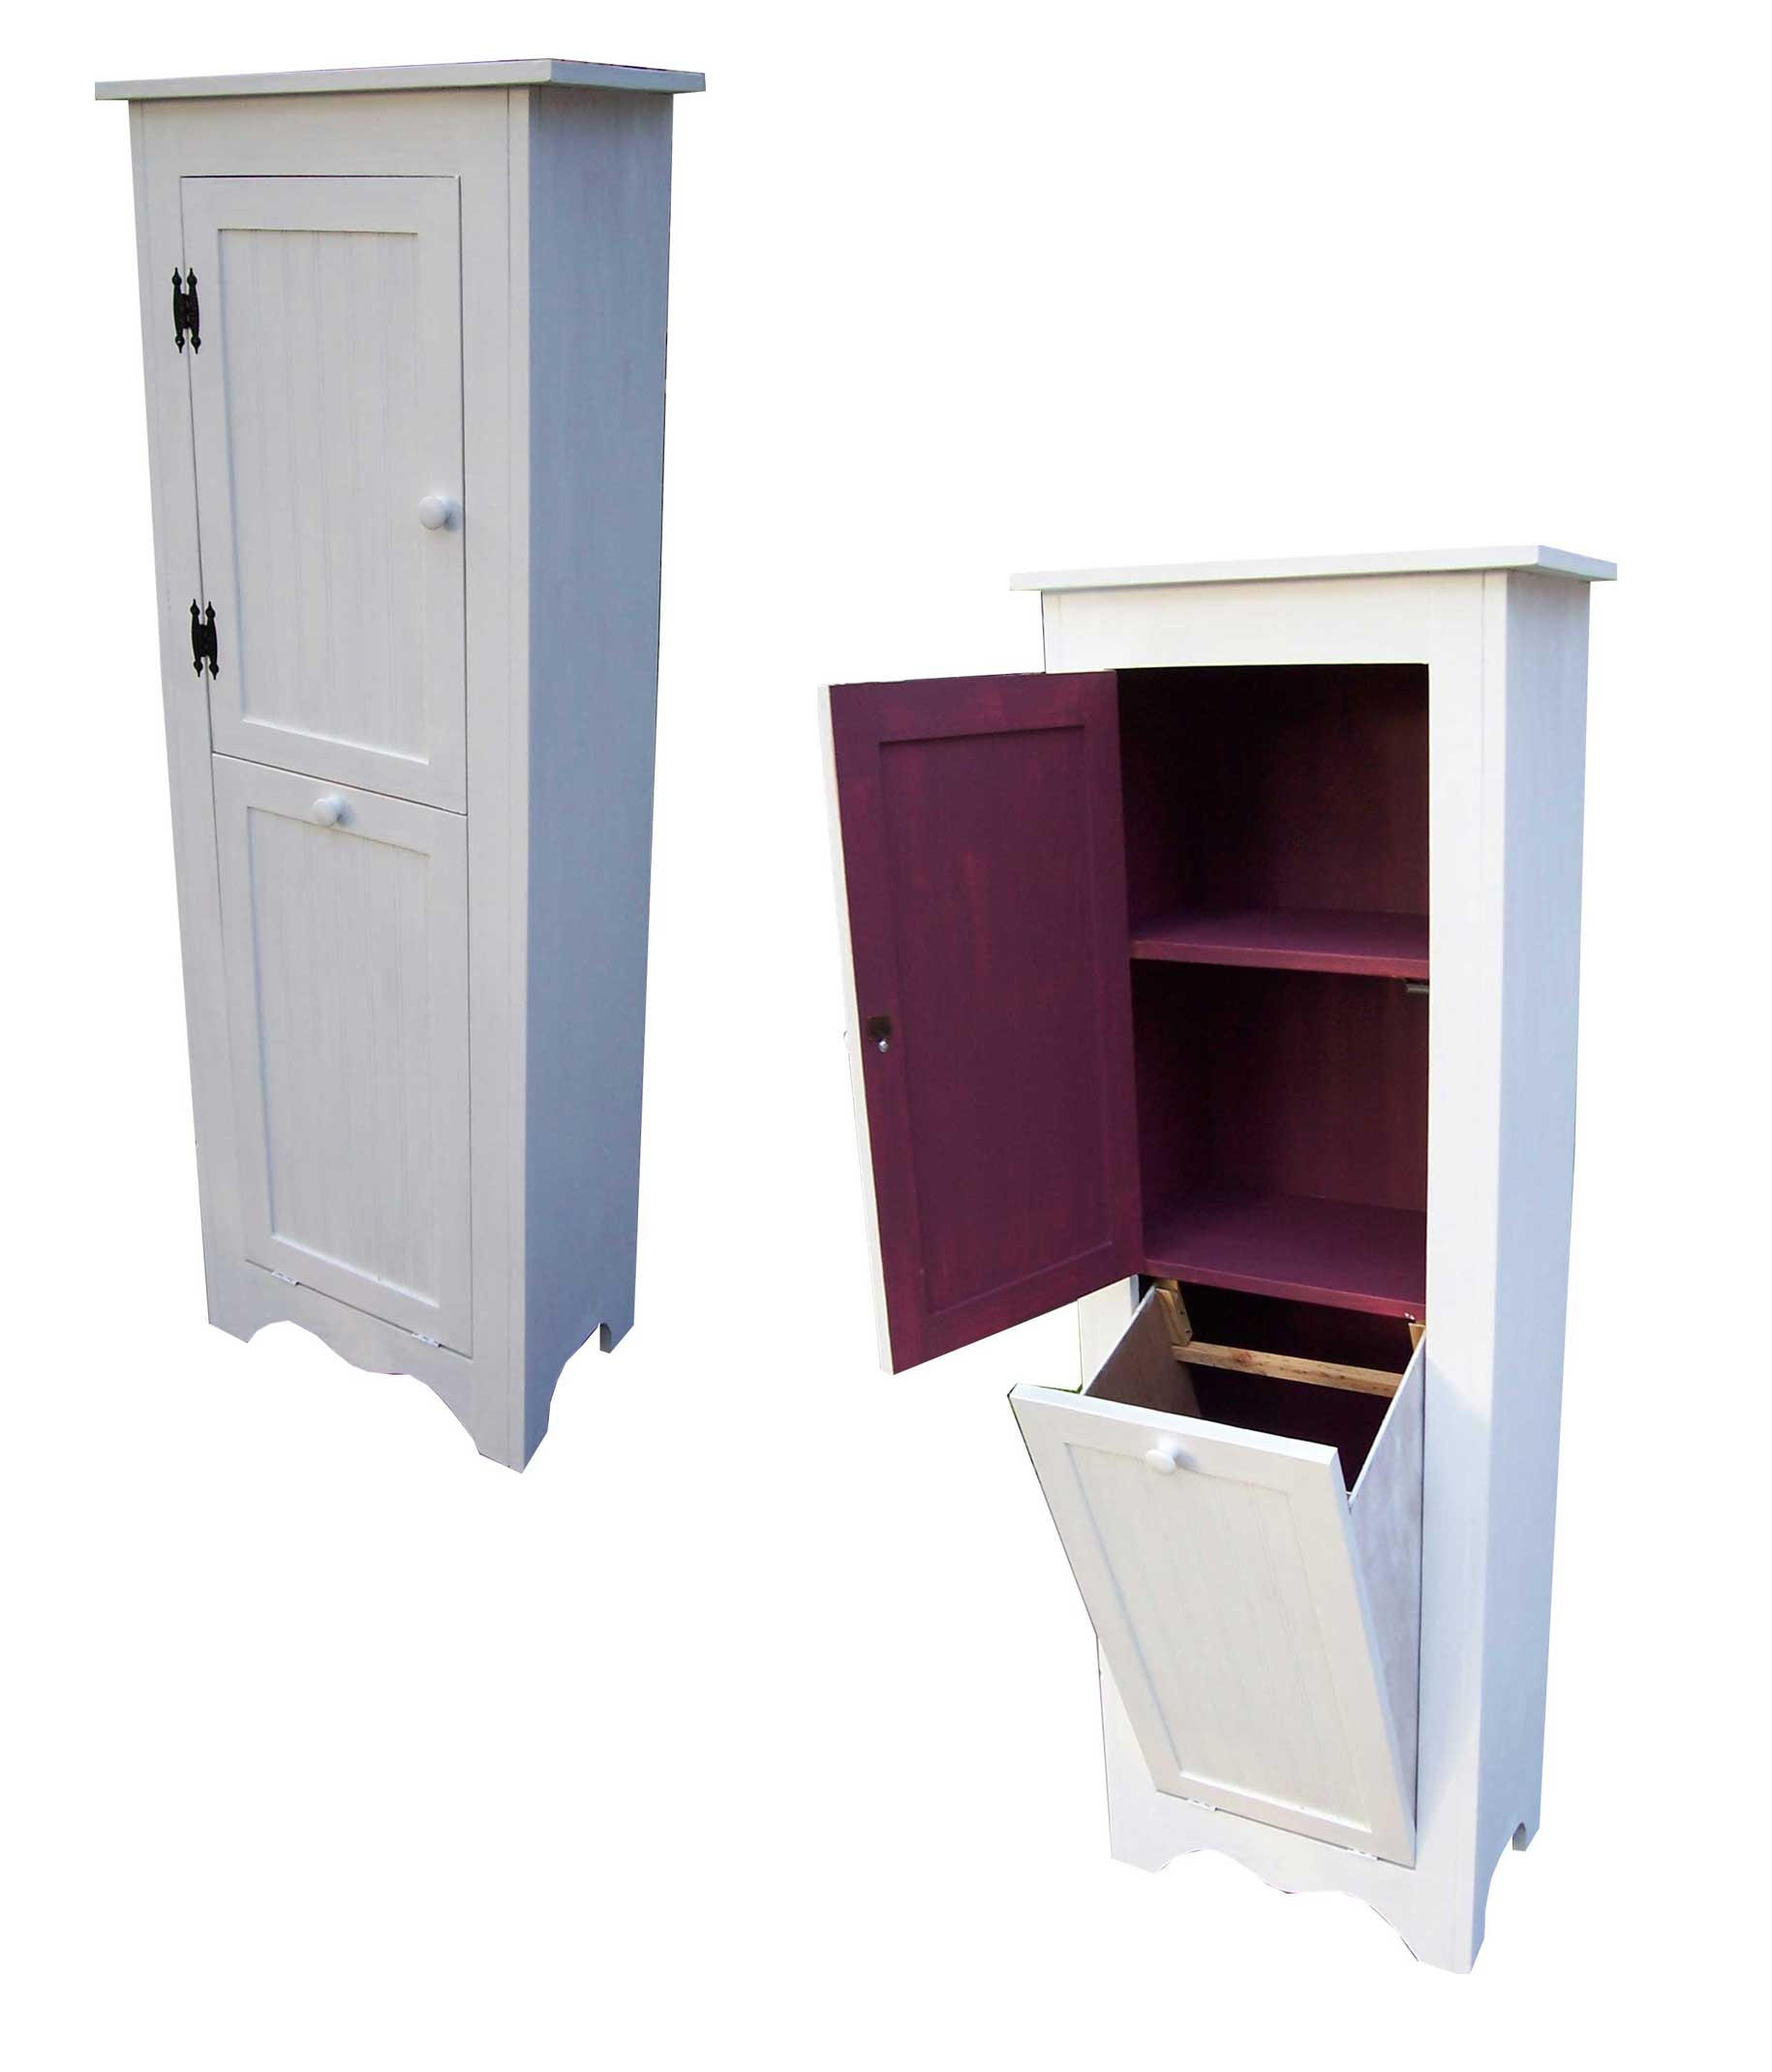 Bathroom Cabinet With Laundry Bin1830 X 2140